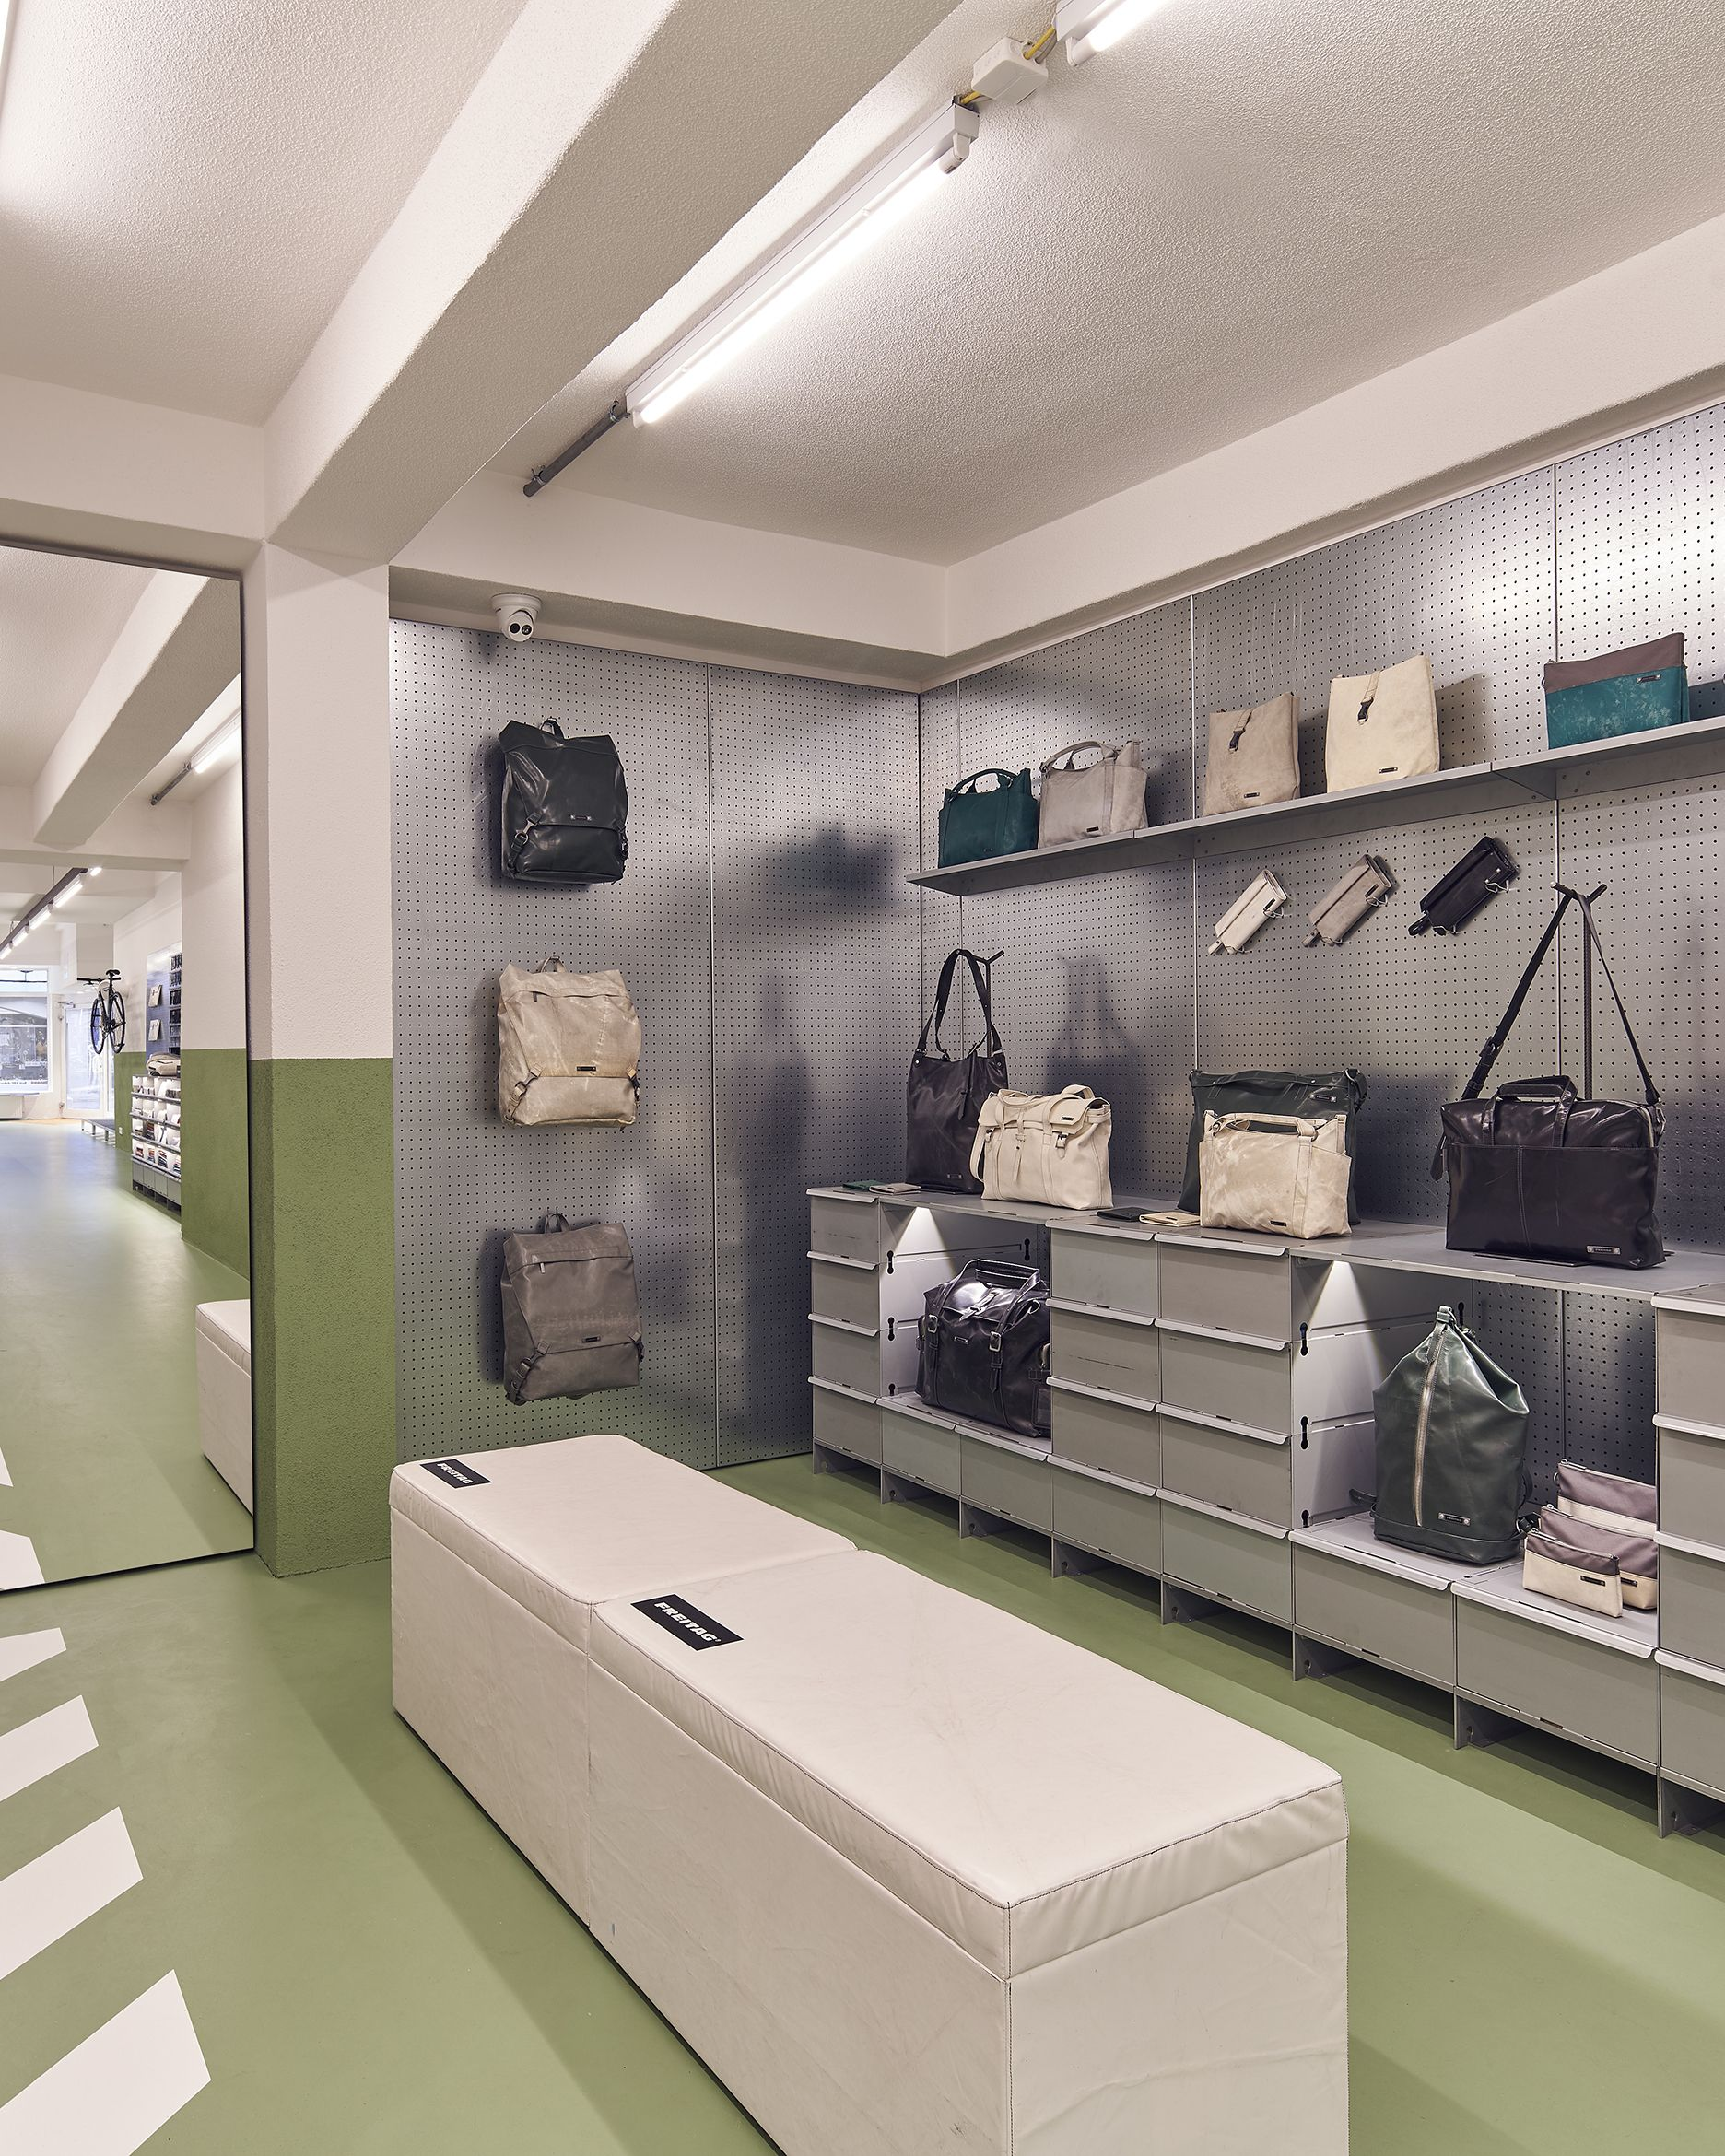 Interior Design Düsseldorf Interior Design Of Our Freitag Store In Düsseldorf By ...